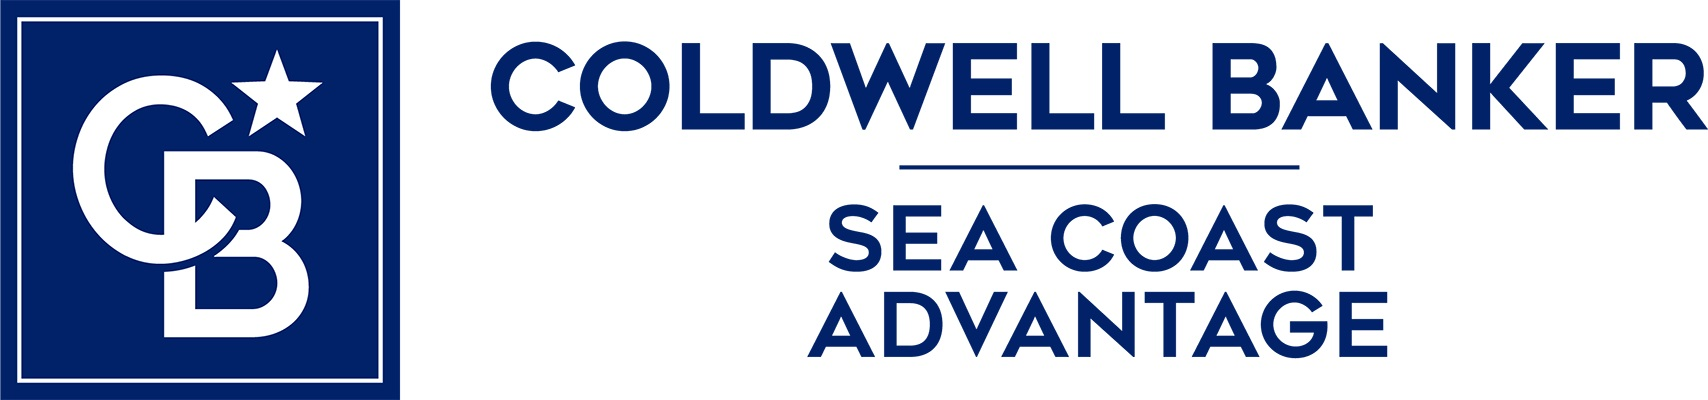 Joanne Wesson - Coldwell Banker Sea Coast Advantage Realty